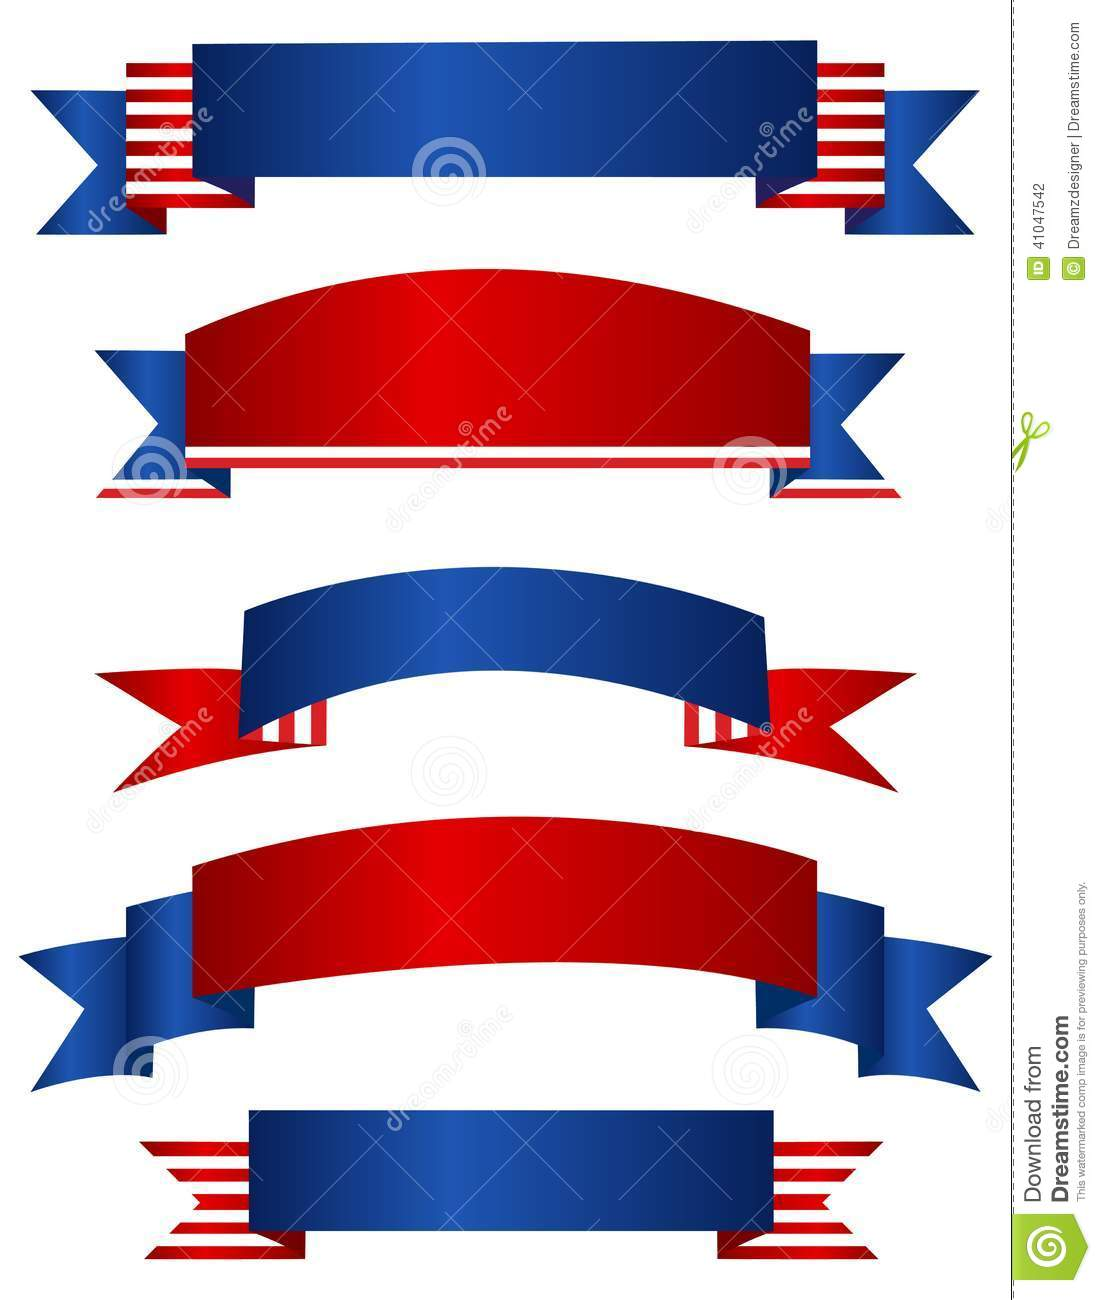 Red white blue banner clipart 4 » Clipart Station.